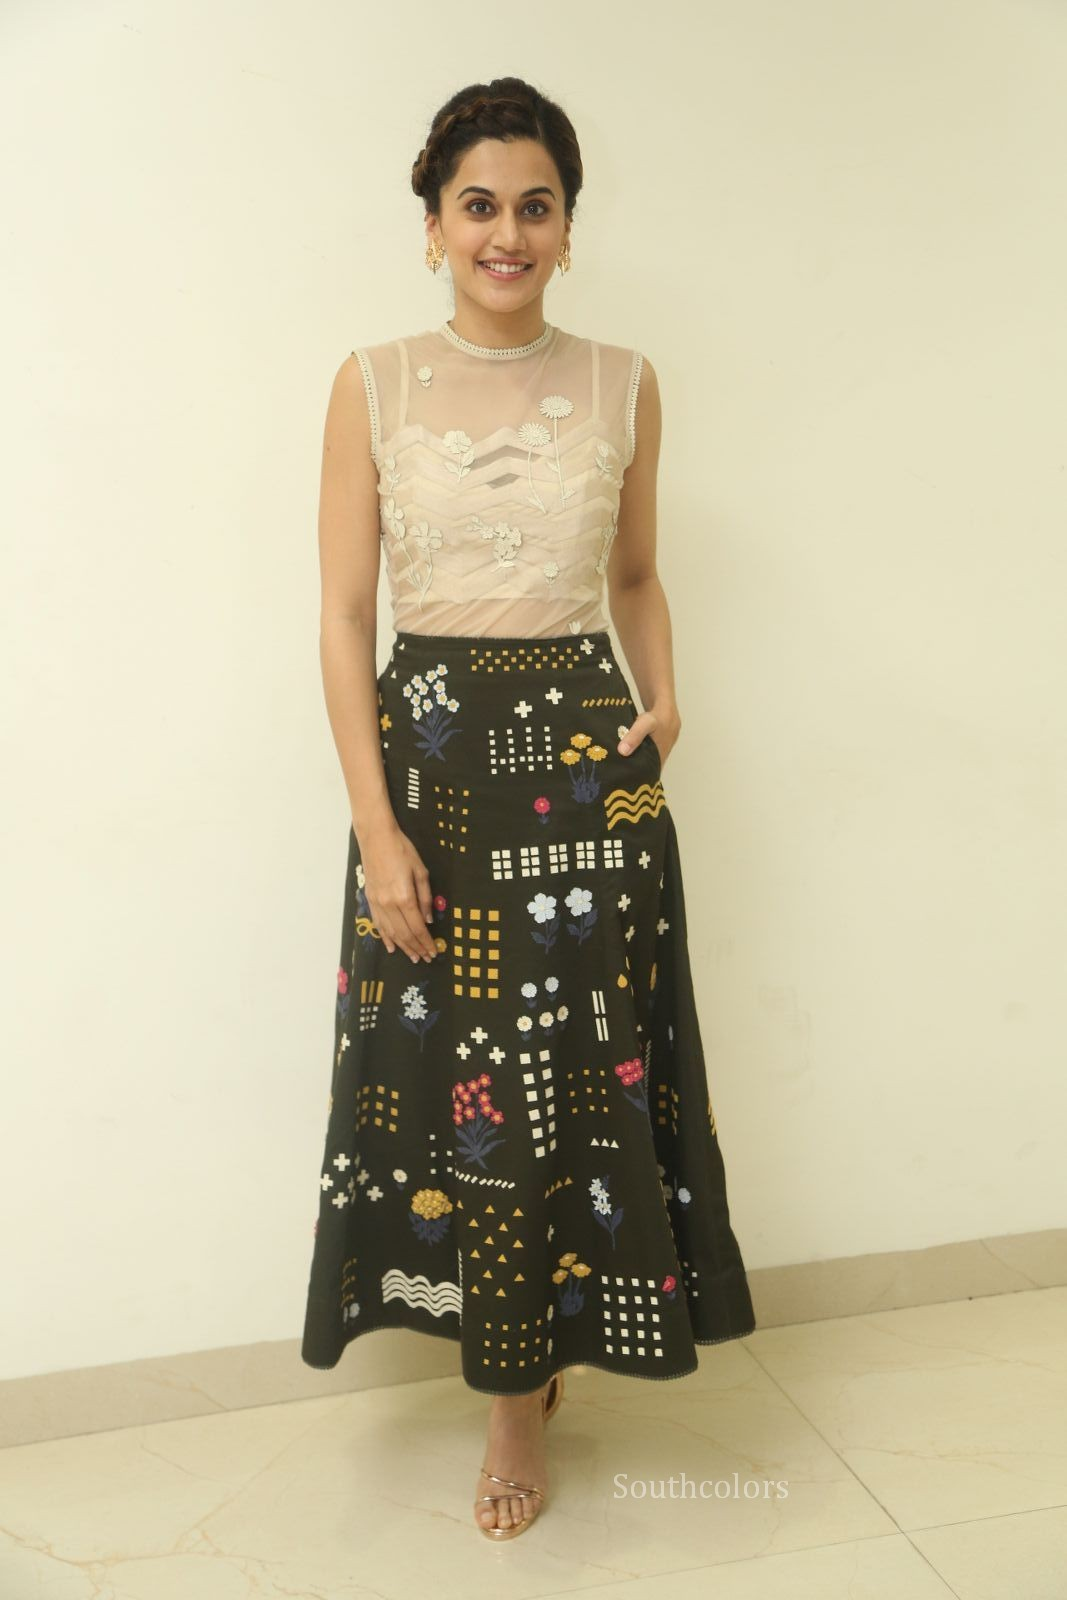 taapsee pannu stills at anando brahma trailer launch southcolors%2B%25282%2529